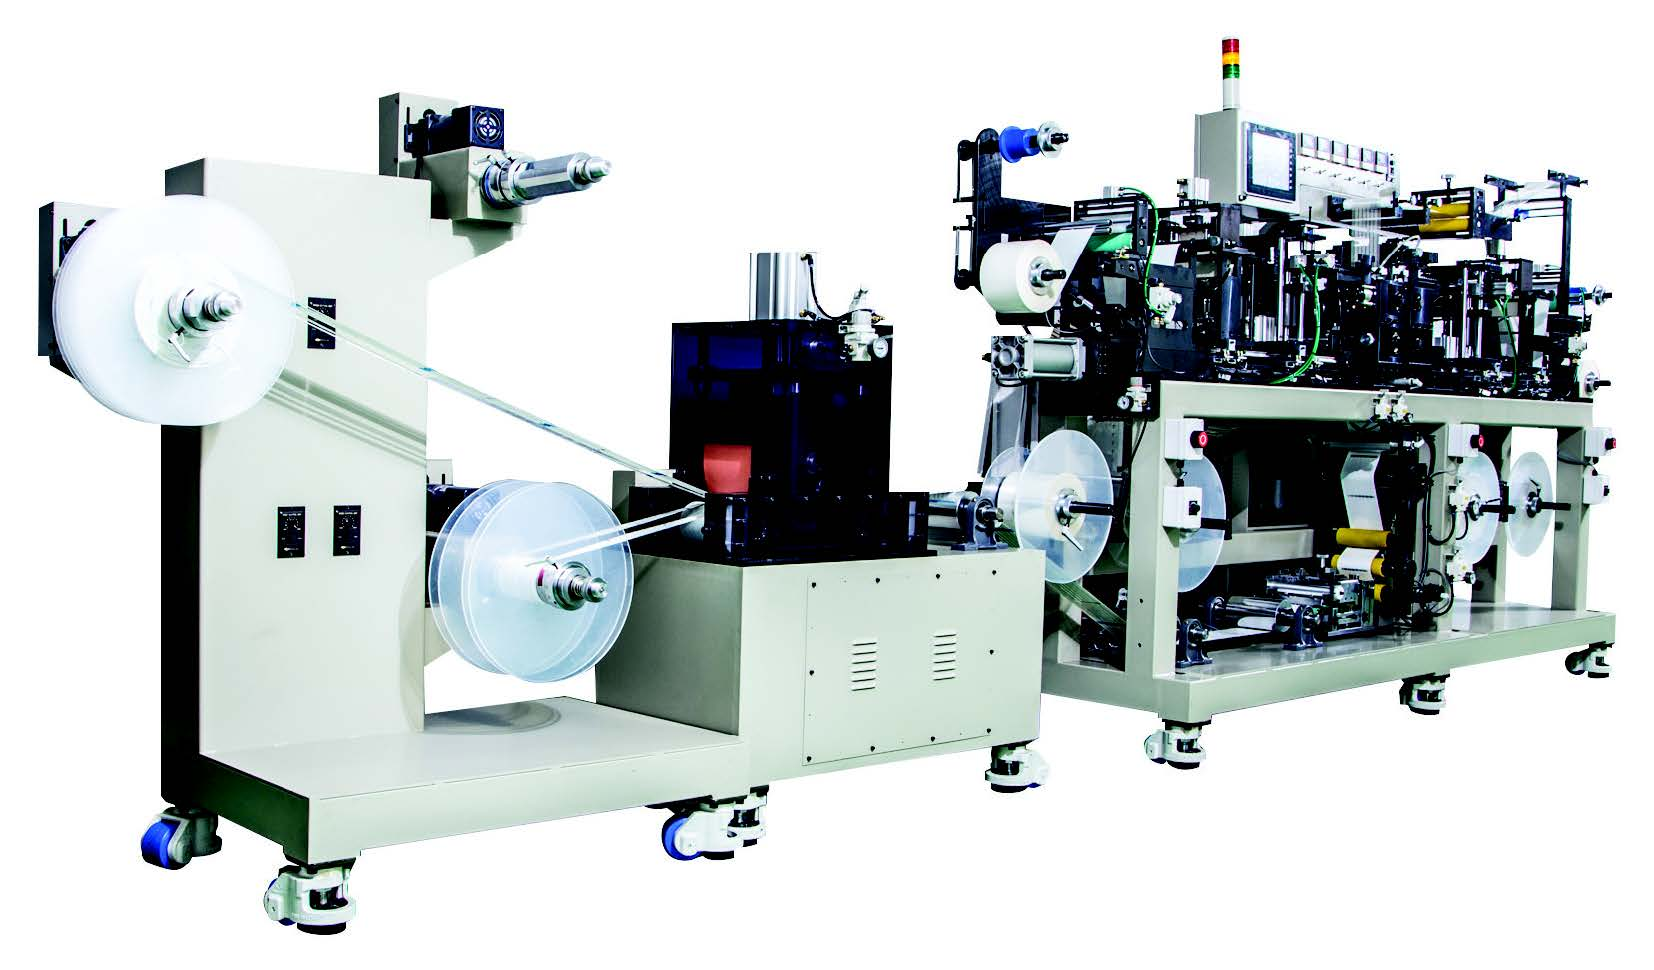 IFC-FFC automated Lamination Machine (flexible flat cable)